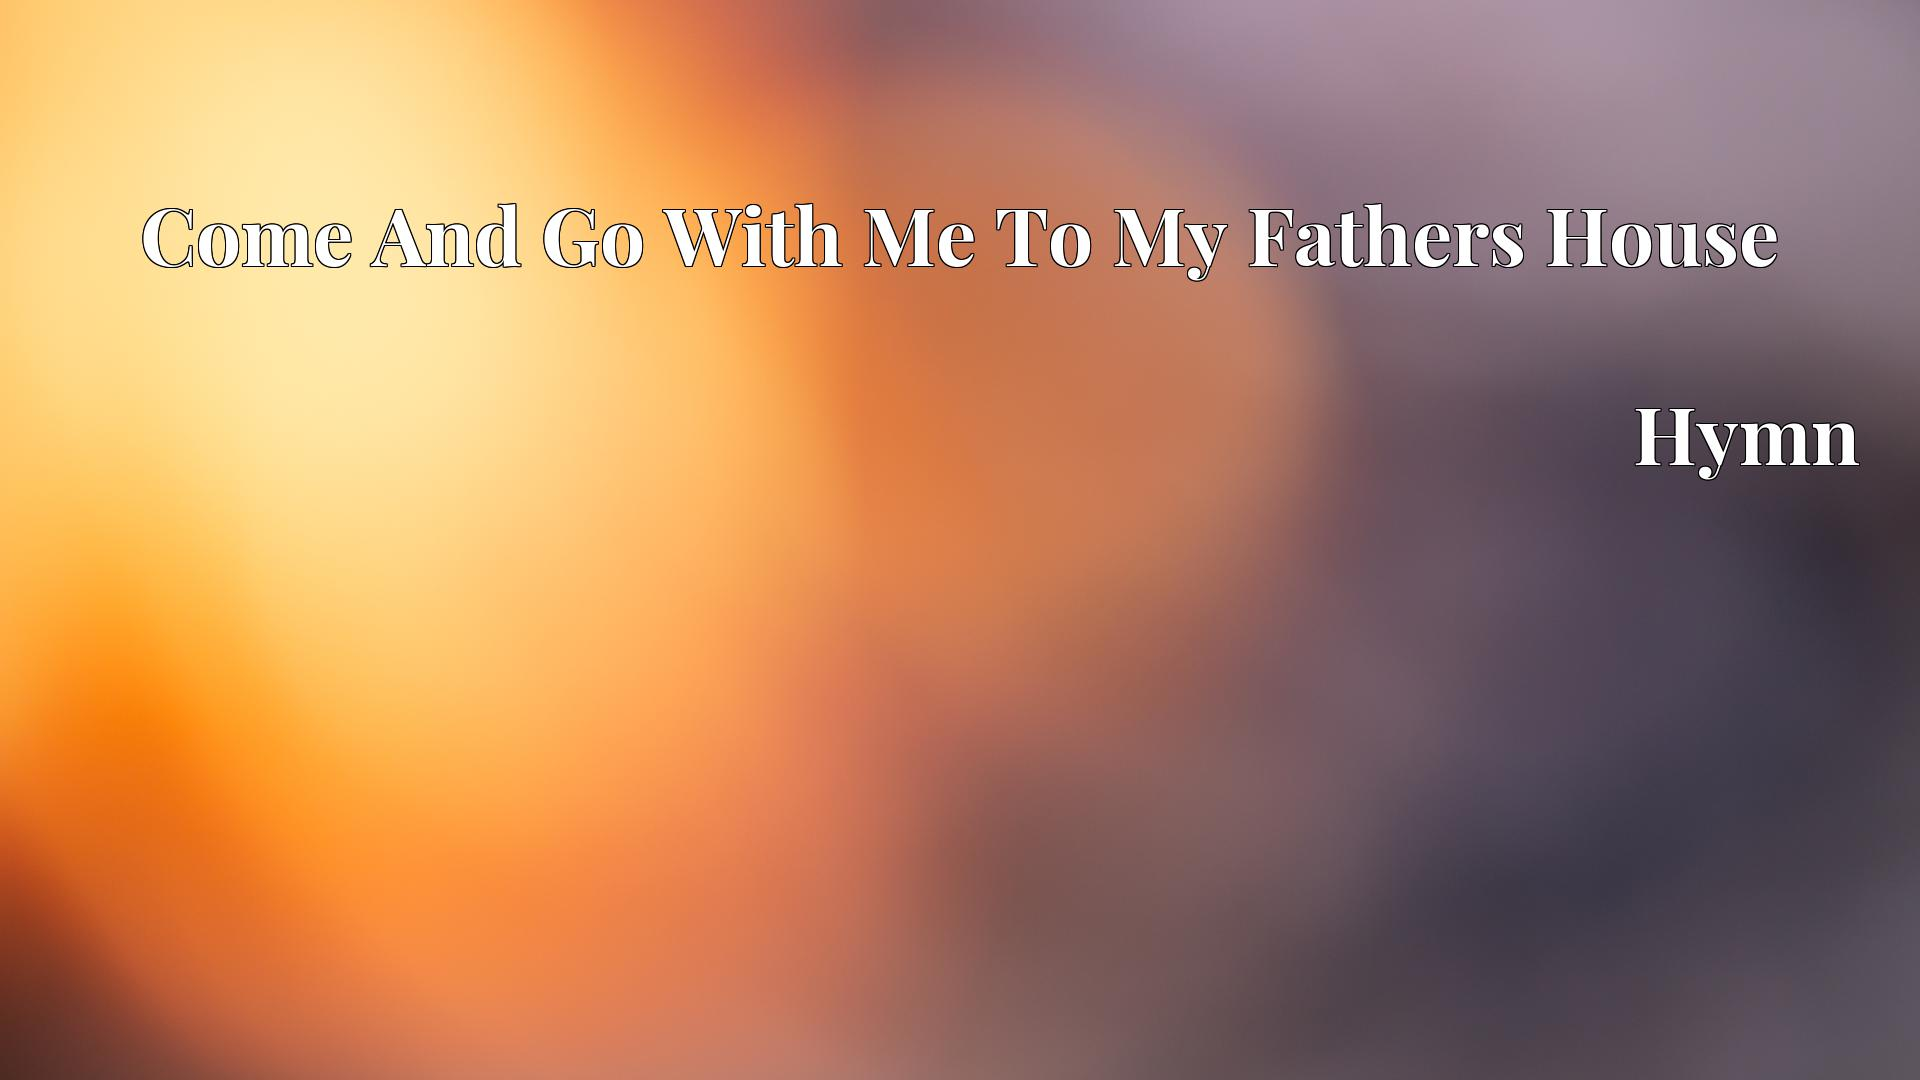 Come And Go With Me To My Fathers House - Hymn